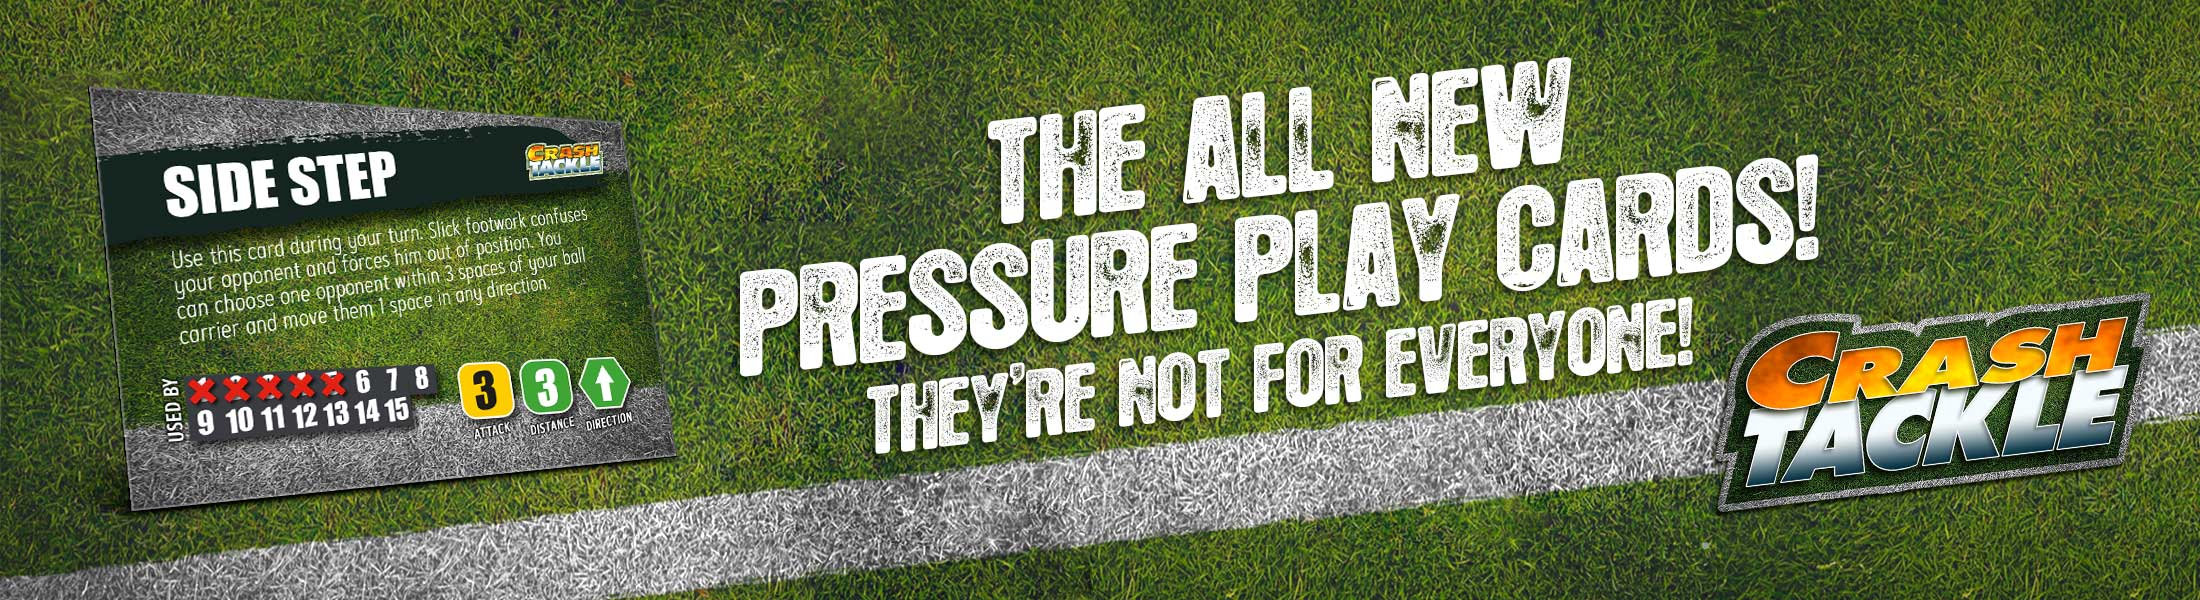 Crash-Tackle-new-pressure-play-cards.jpg